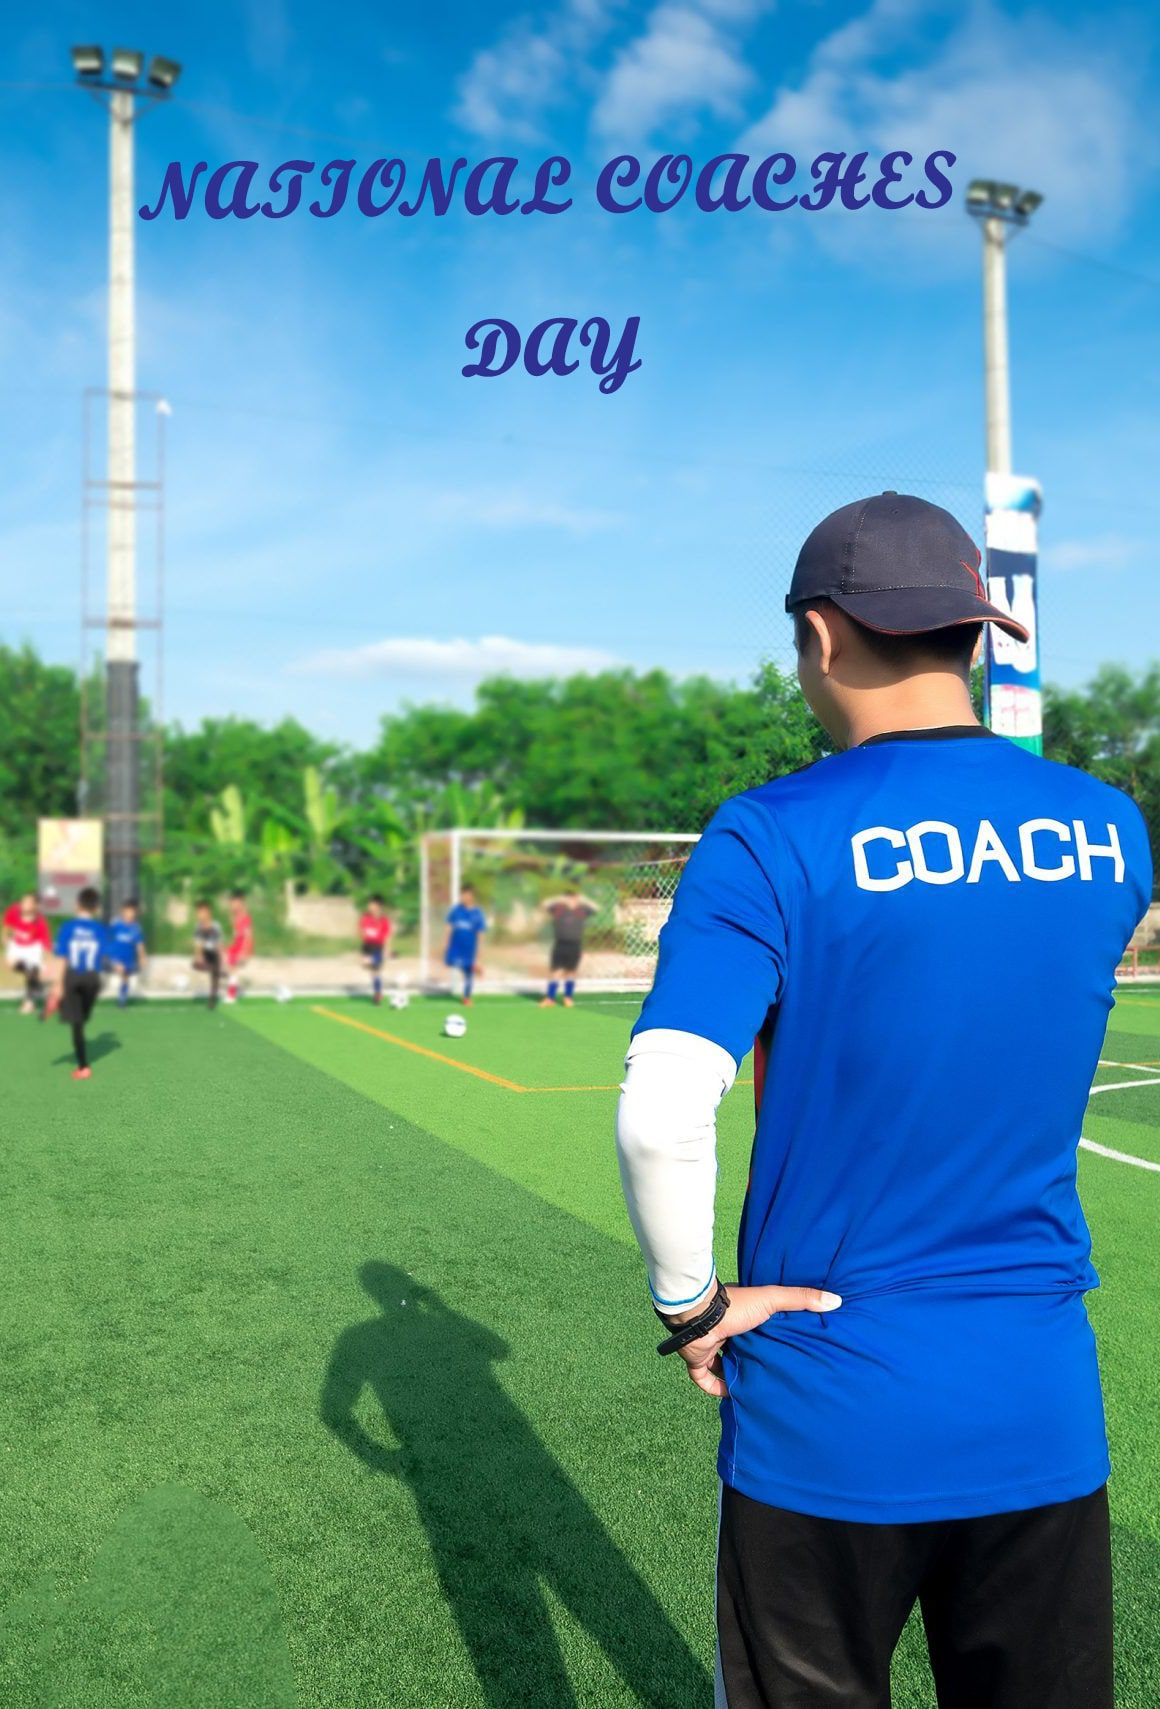 National Coaches Day Wallpaper Iphone Kolpaper Awesome Free Hd Wallpapers